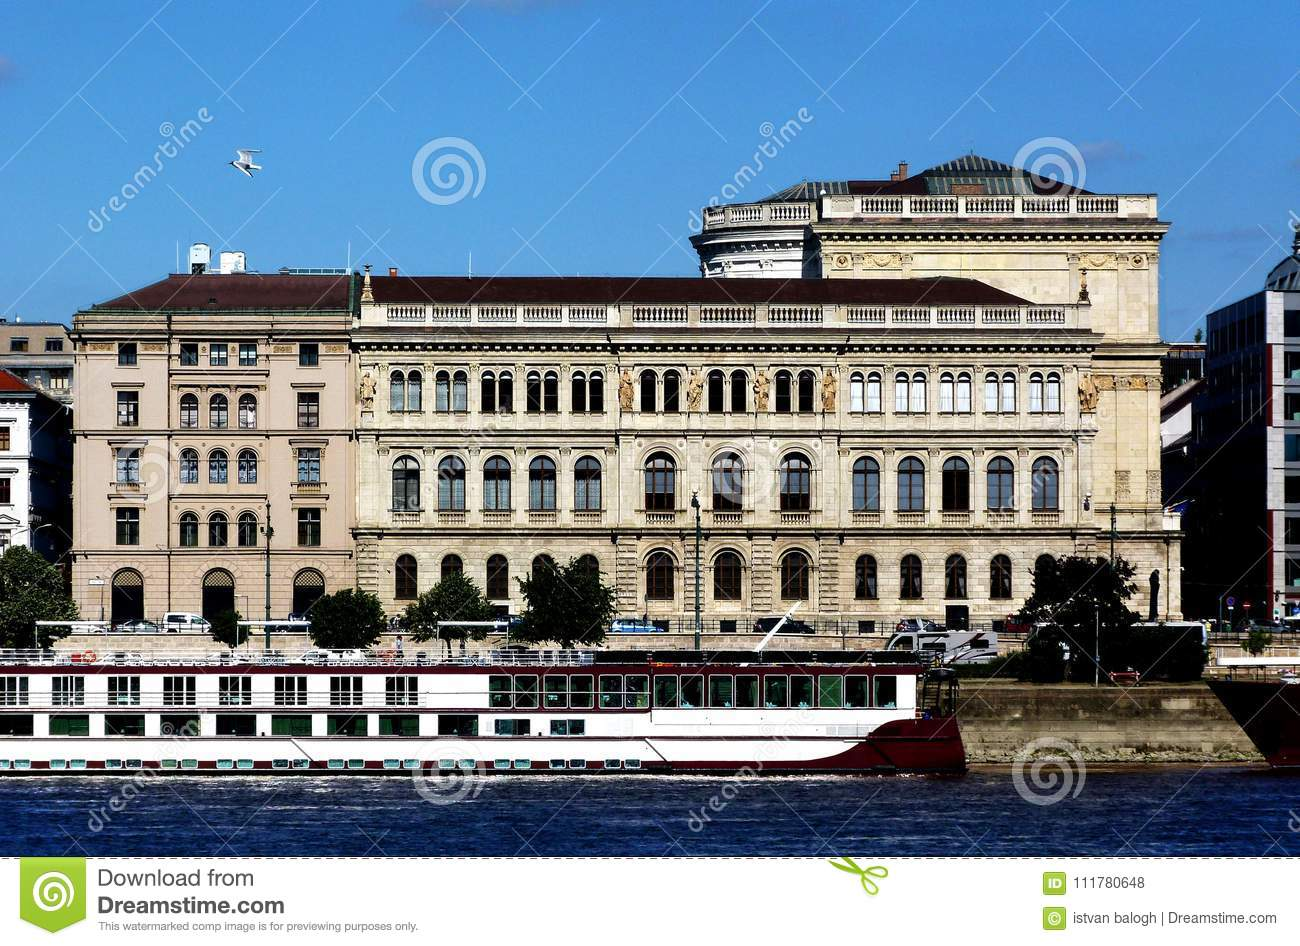 Residential Building along the Danube in Budapest